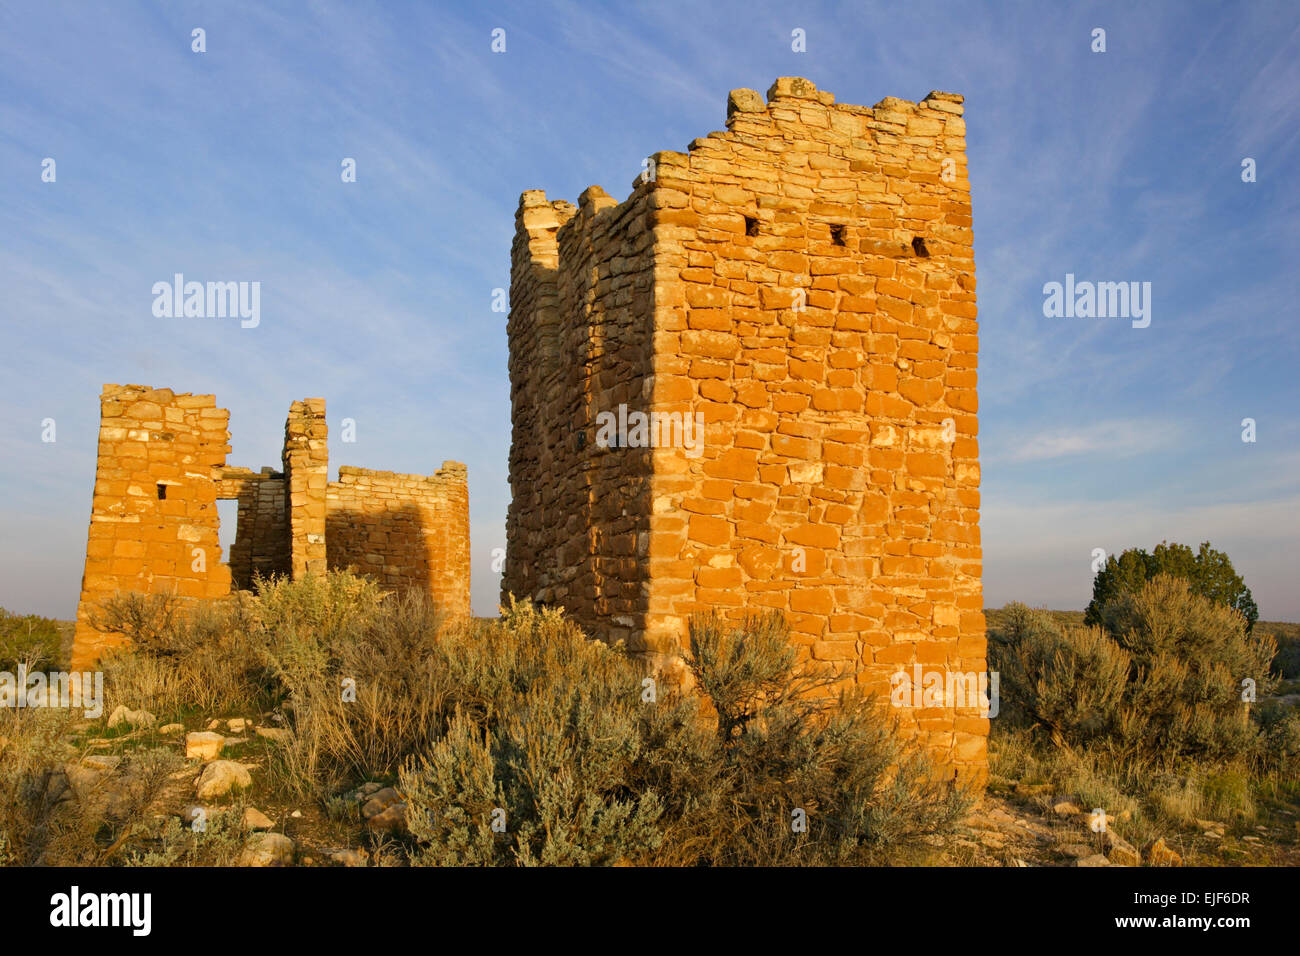 Hovenweep Burg, Square Tower Group, Hovenweep National Monument, Utah, USA Stockbild